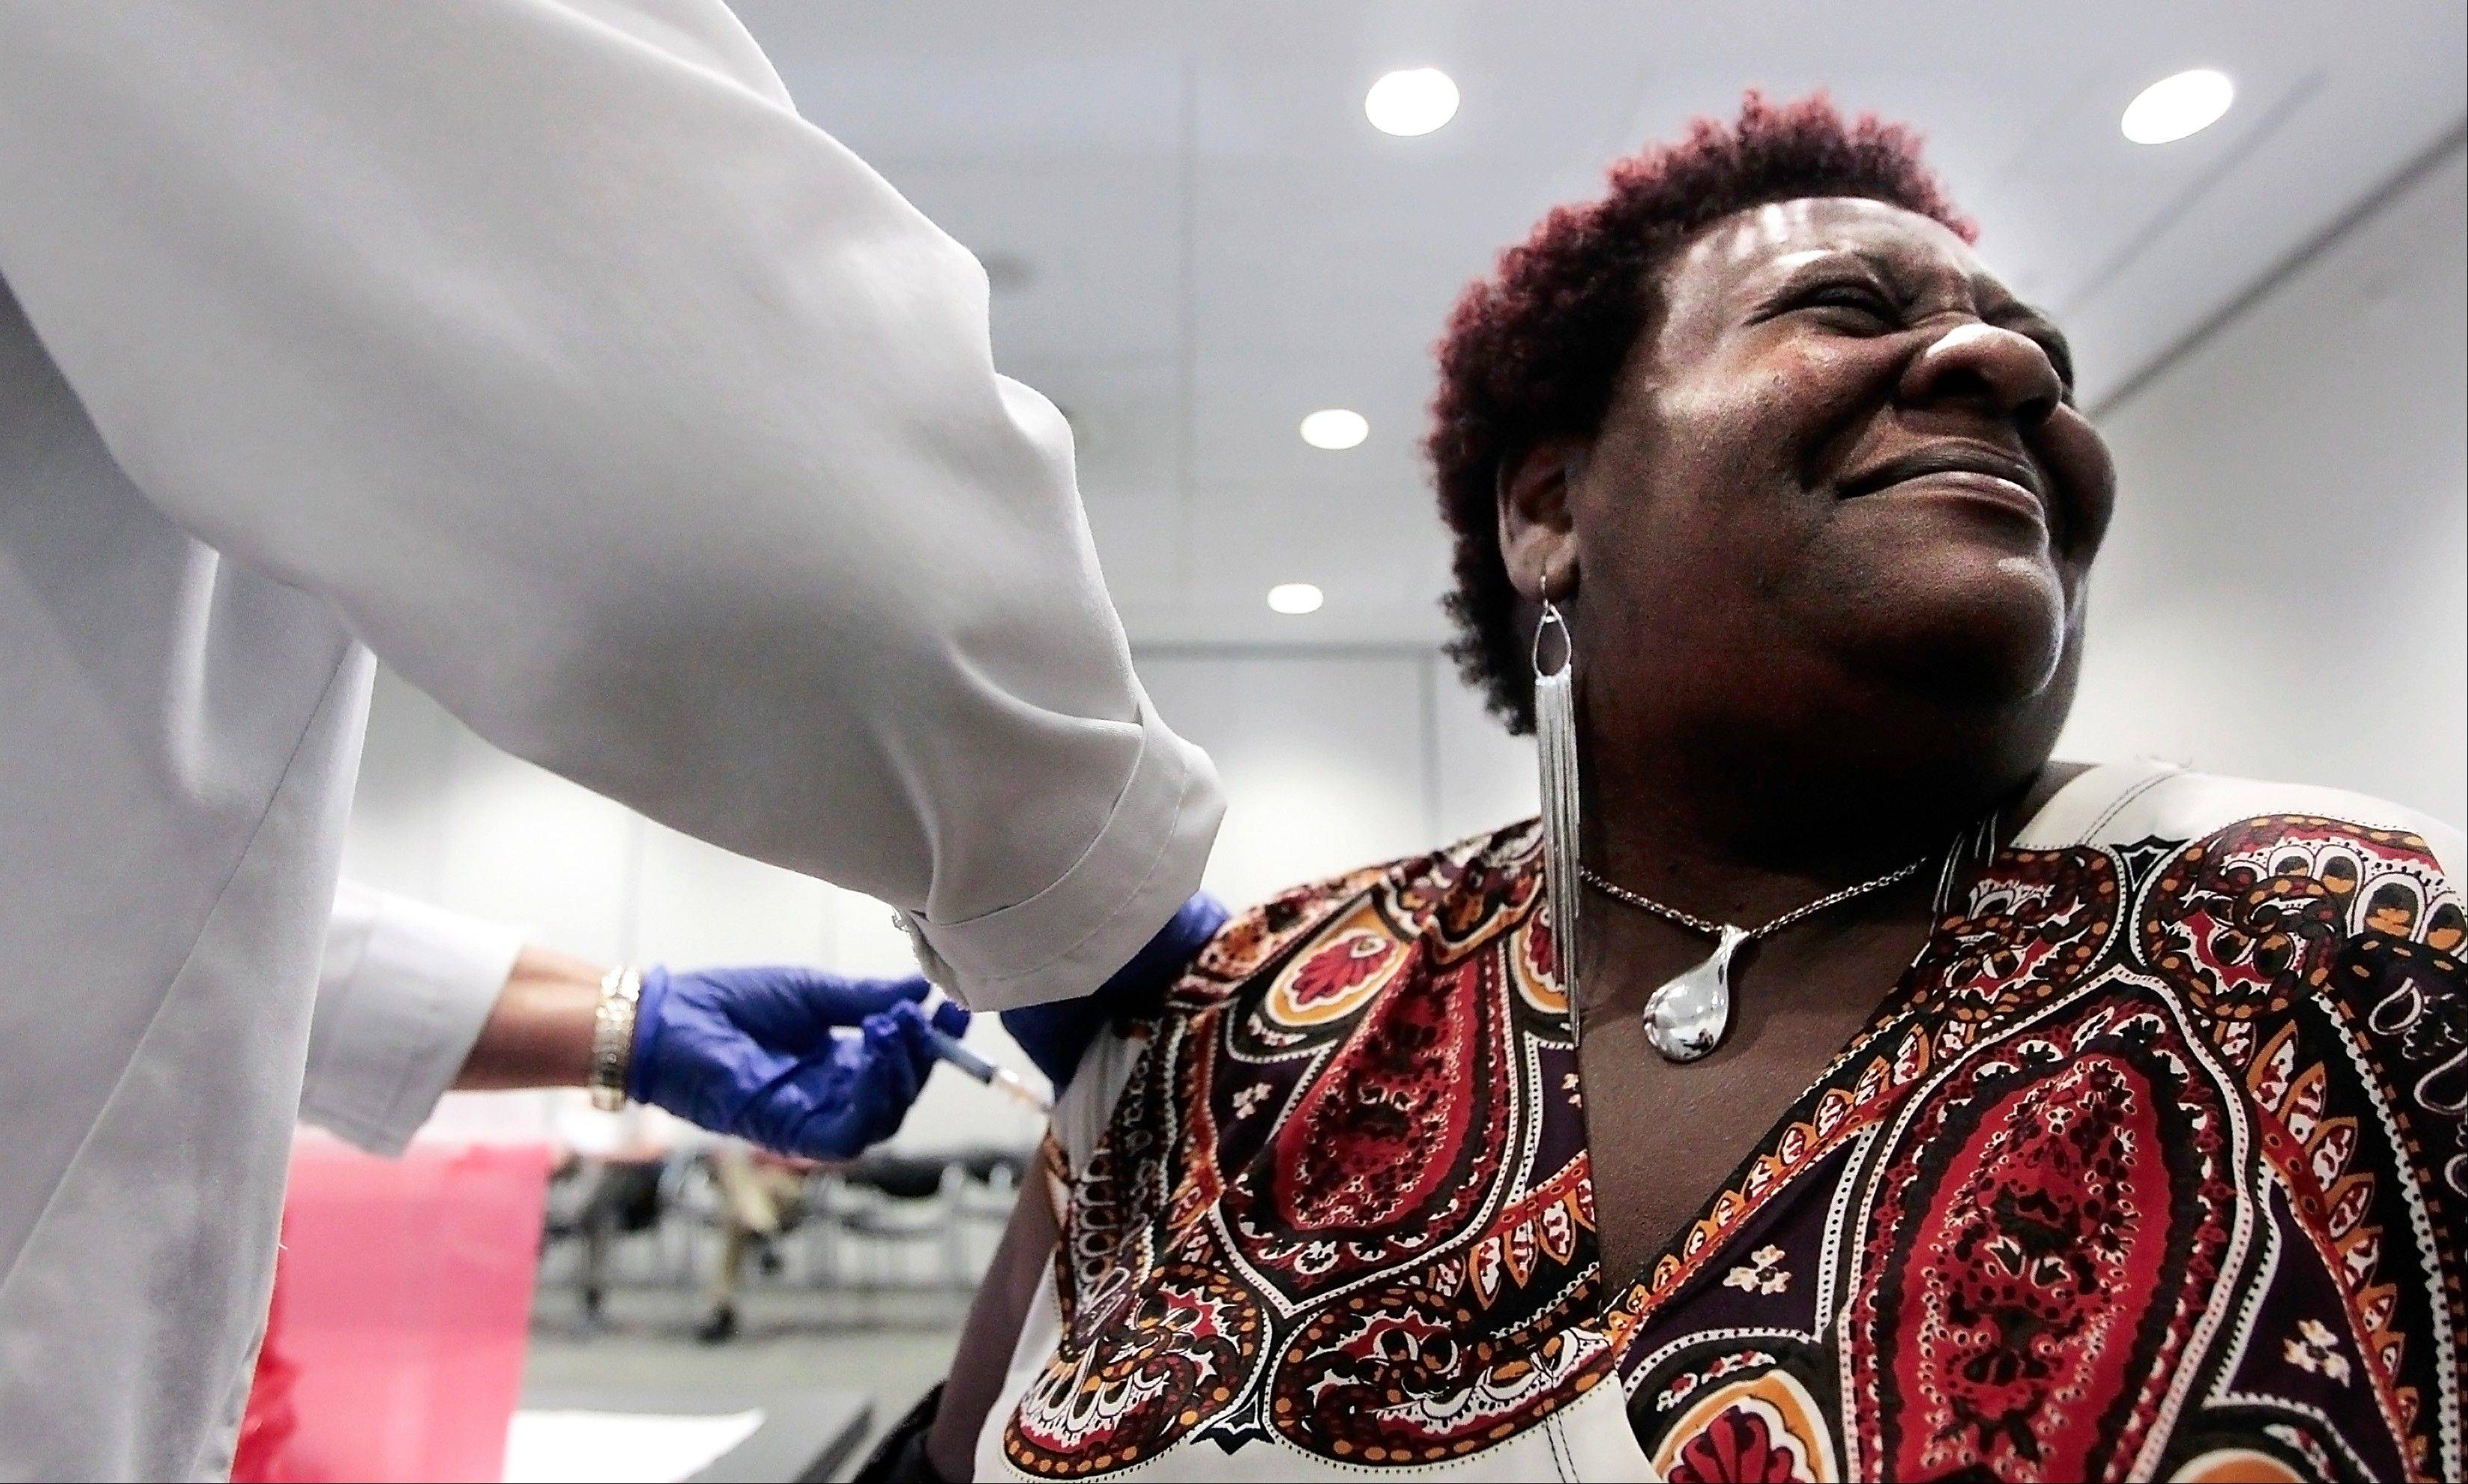 Elizabeth Saint Victor winces as she gets a flu shot from LPN Jean Buck in Memphis, Tenn., Oct. 30. Health officials say flu season is off to its earliest start in nearly 10 years -- and it could be a bad one.